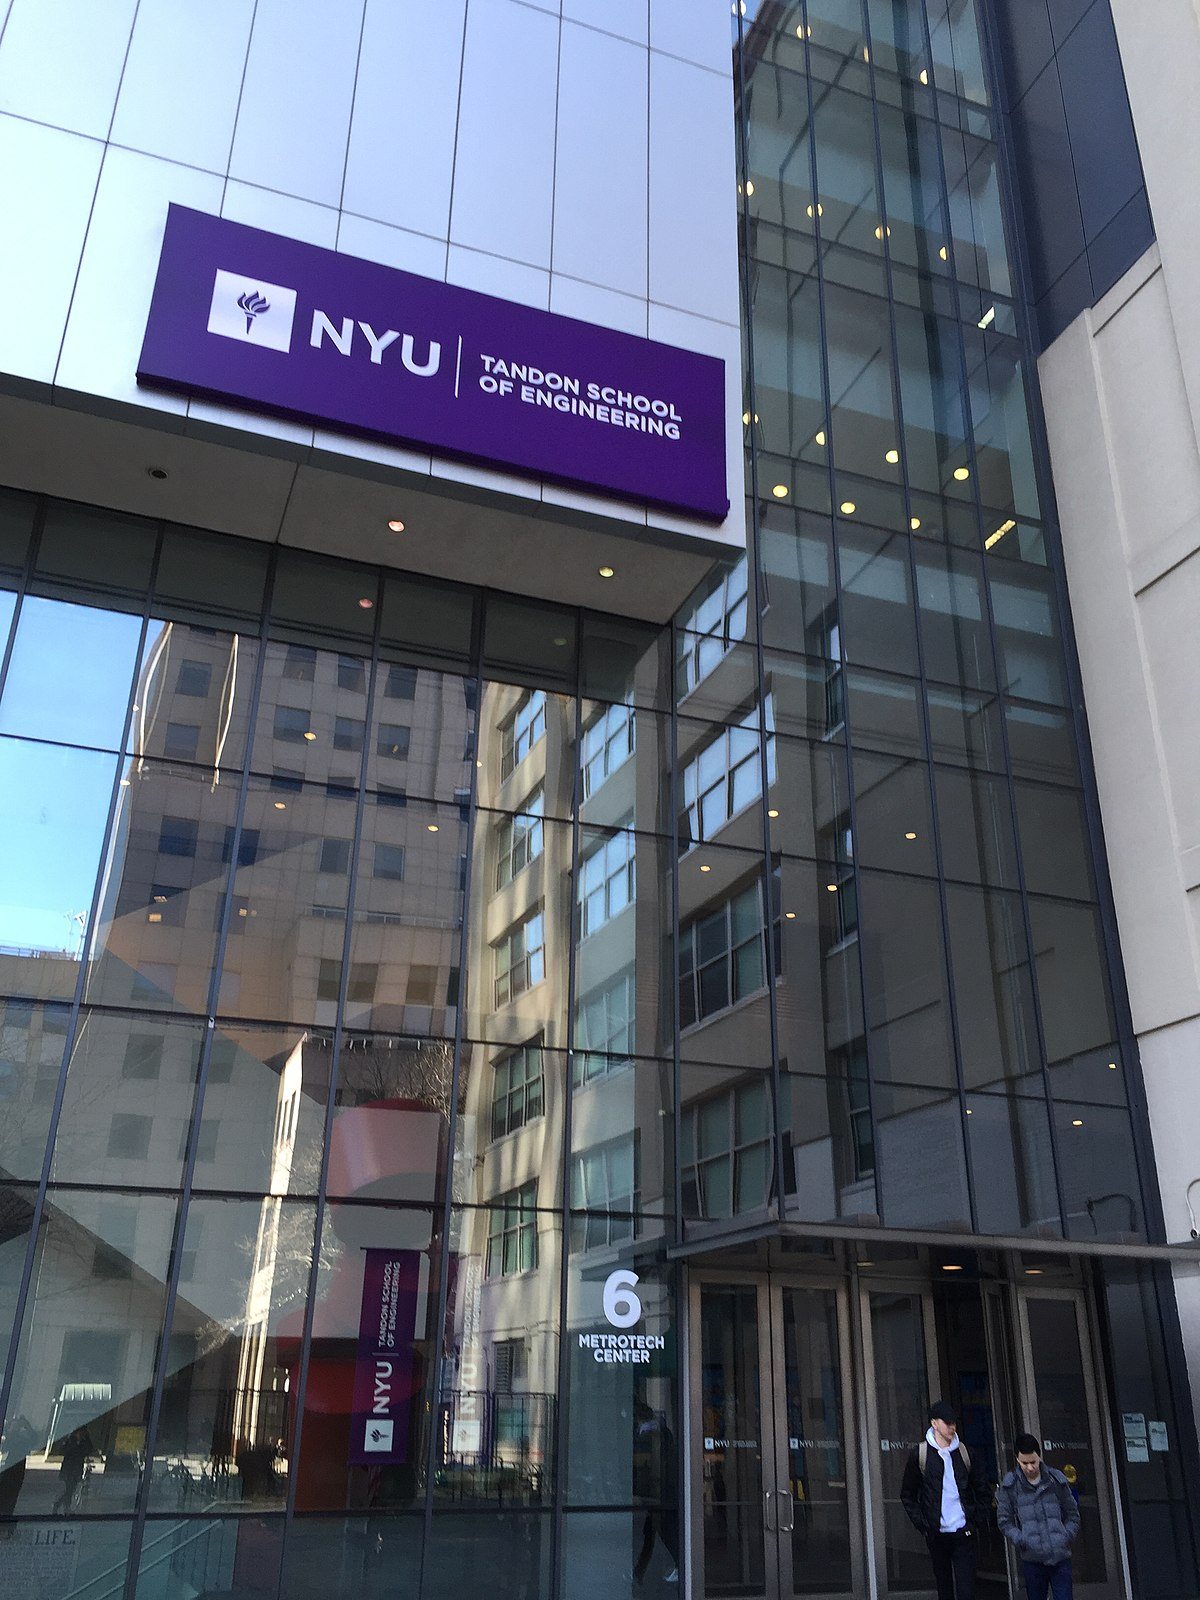 Nyu Tisch School Of The Arts Location New York University Tandon School Of Engineering Wikipedia